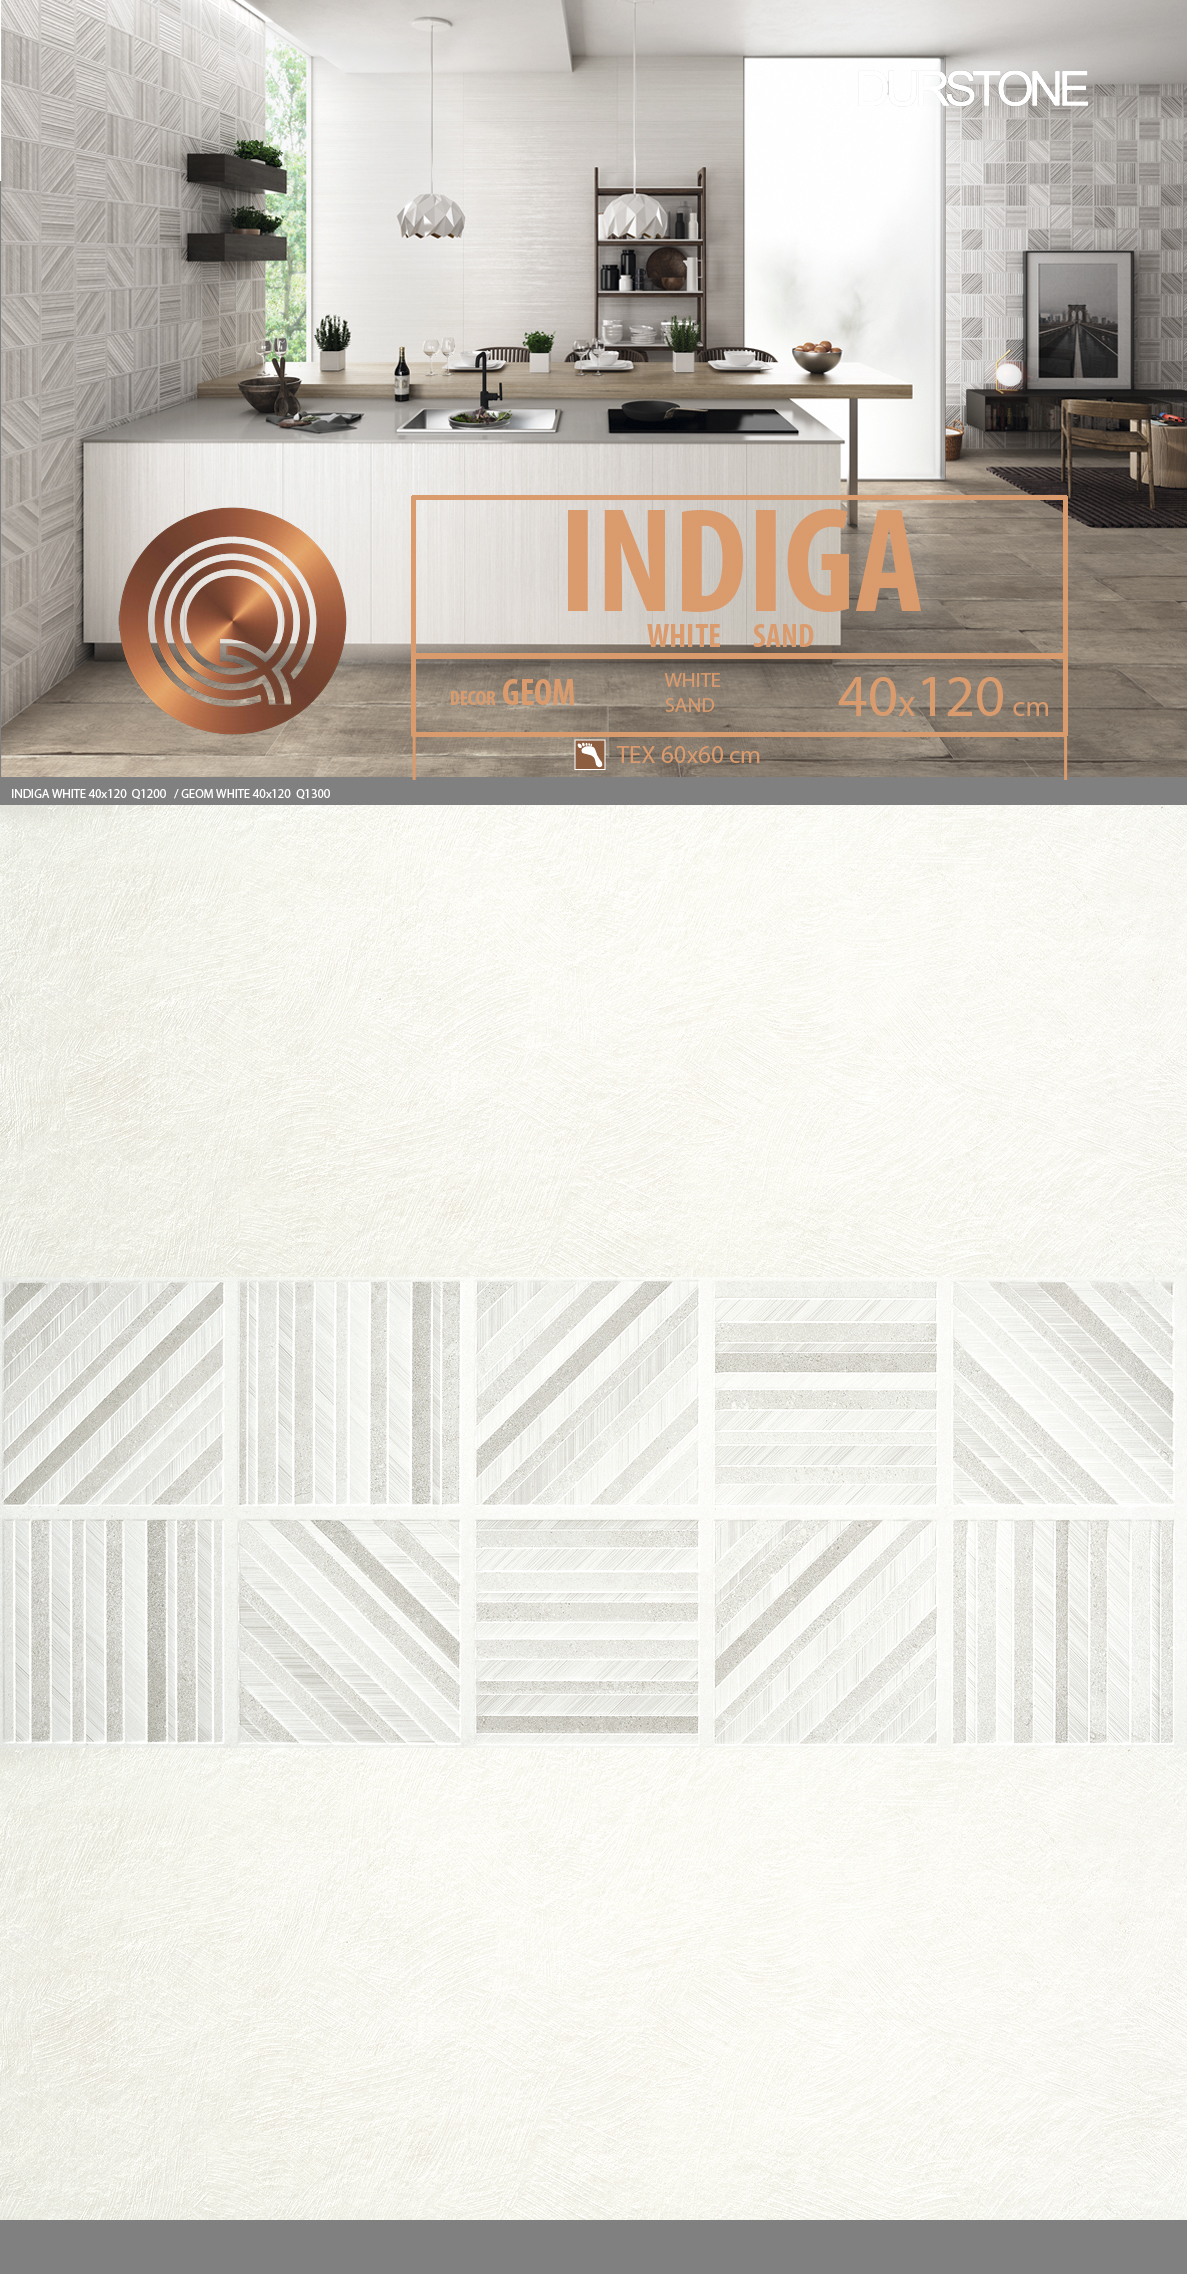 6049 RV PANEL MIX INDIGA / GEOM / LINES WHITE Cod. 6049